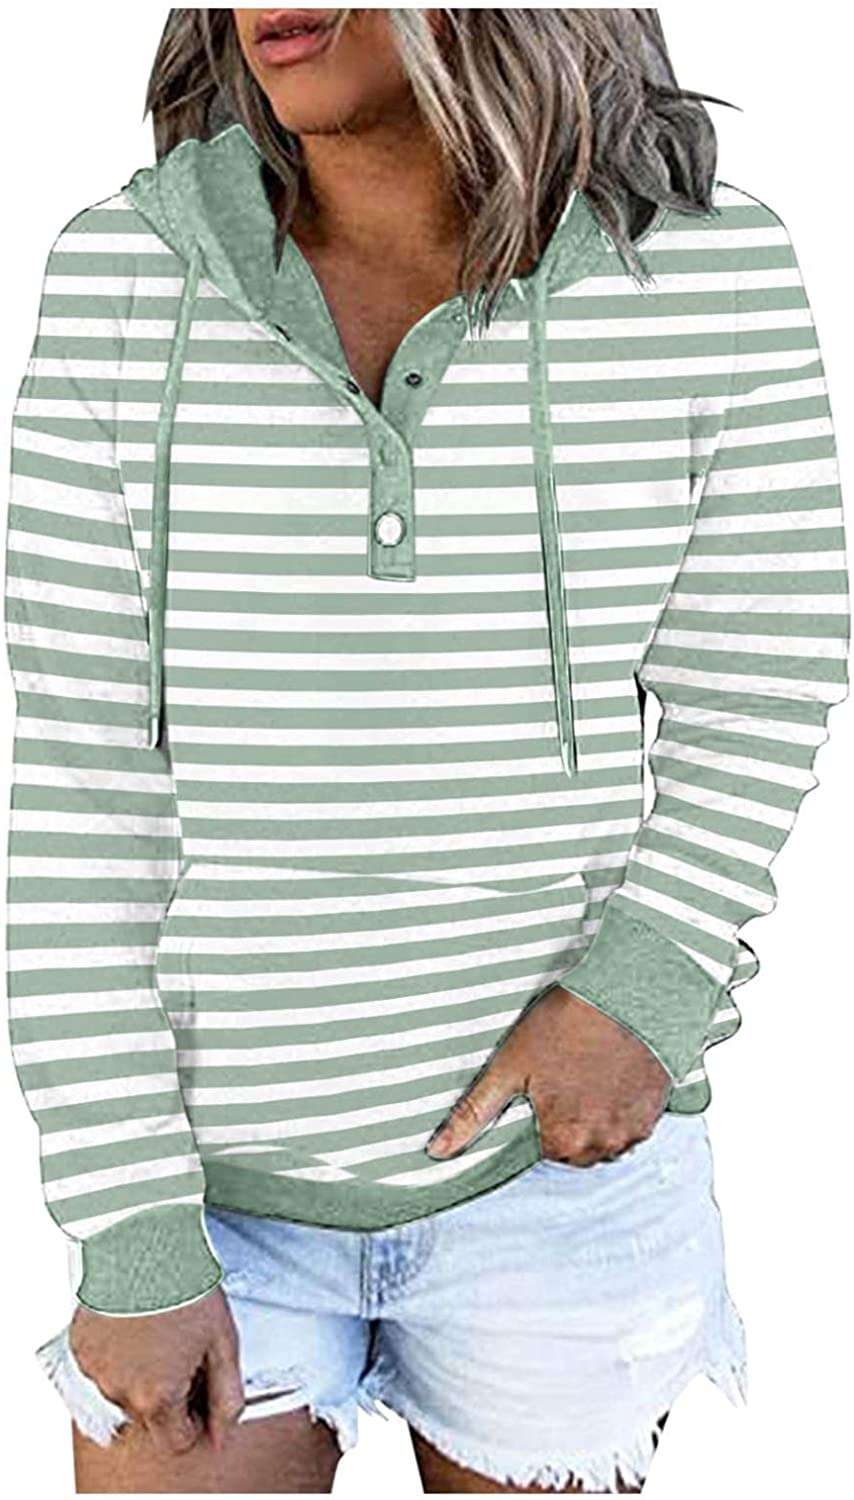 COMVALUE Hoodies for Women,Drawstring Pullover Striped Long Sleeve Button Down V Neck Sweatshirts